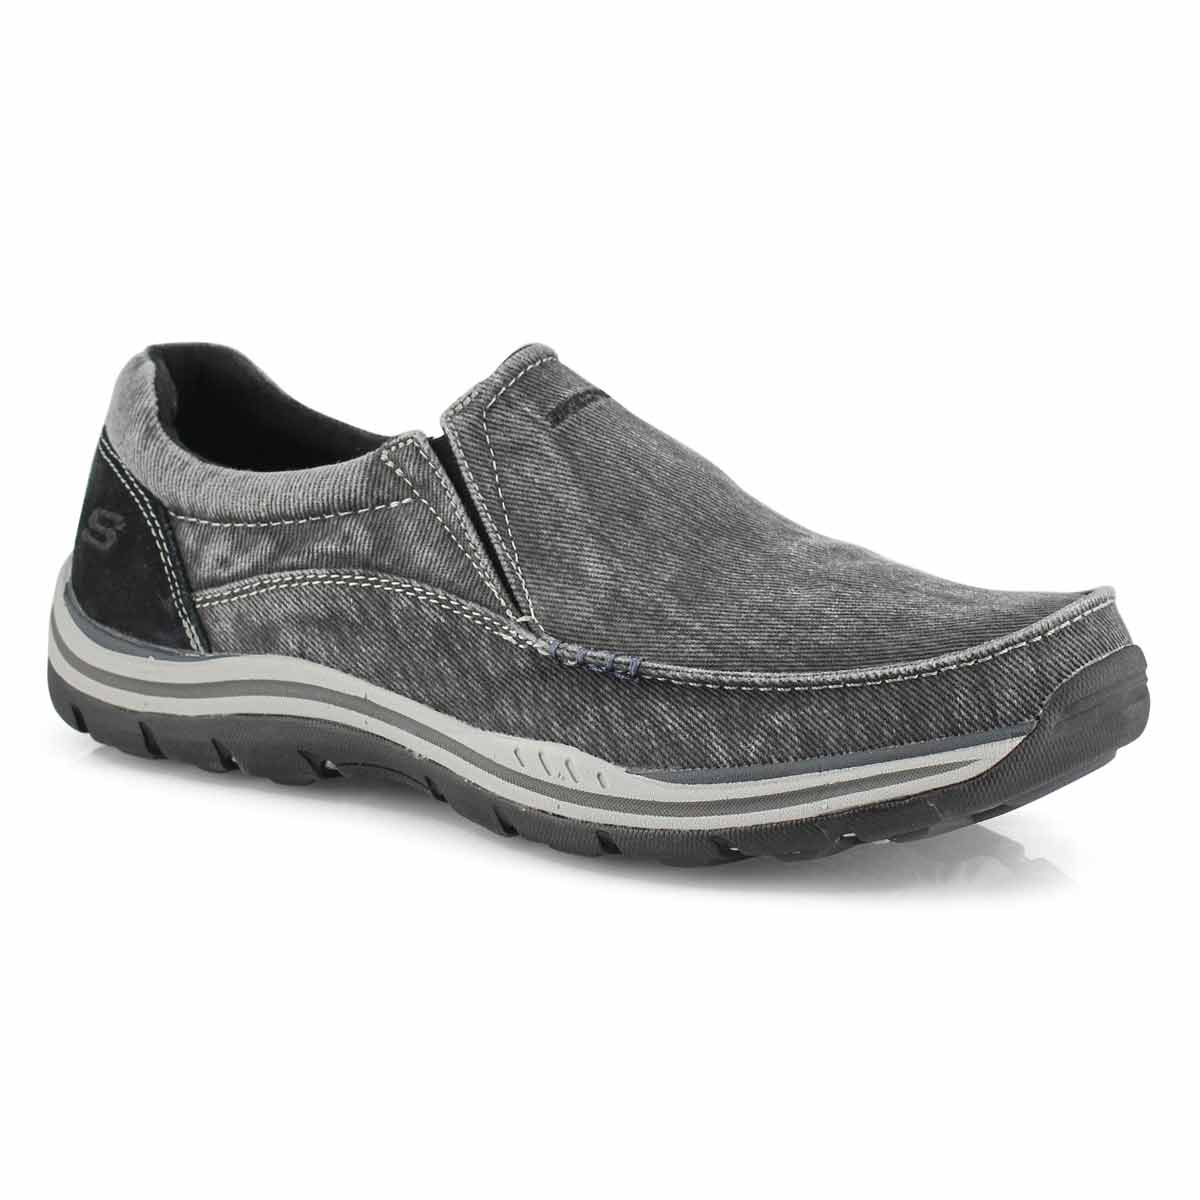 softmoc skechers